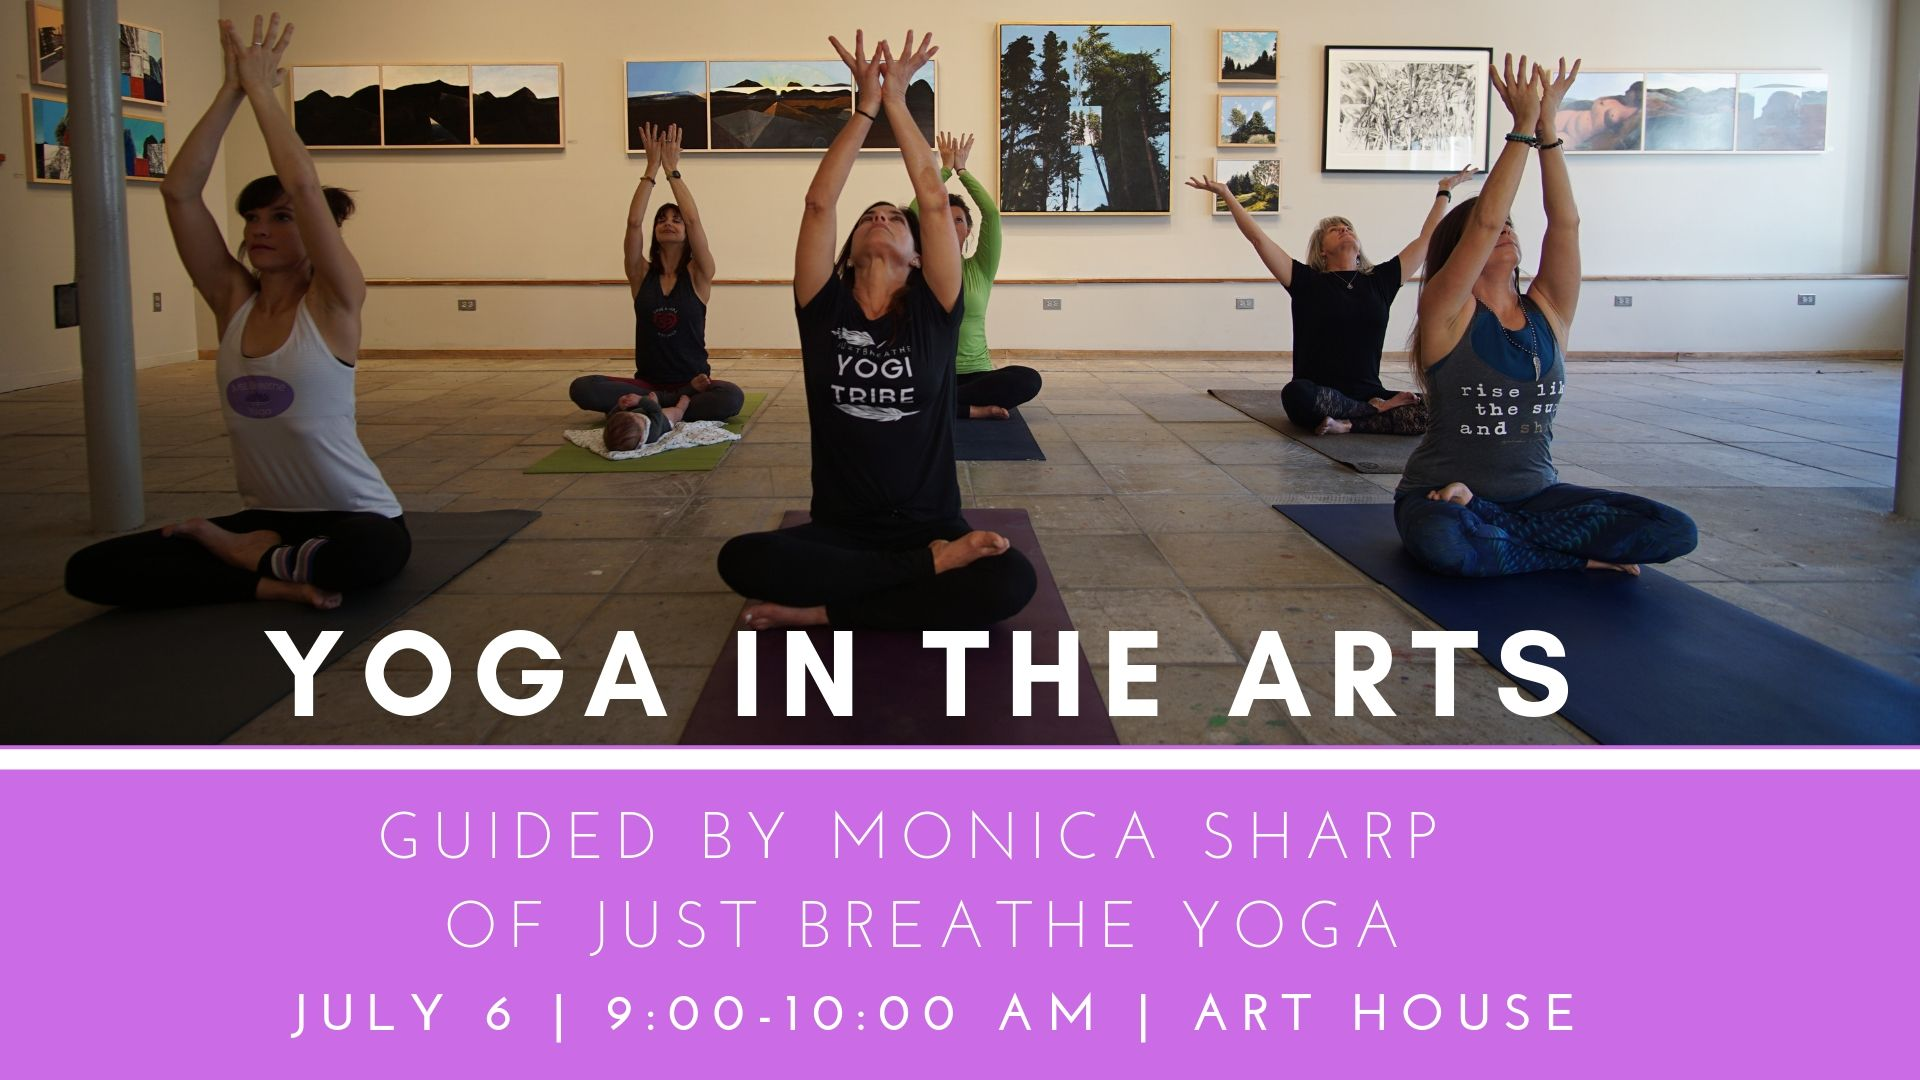 yoga in the arts - august 3.jpg